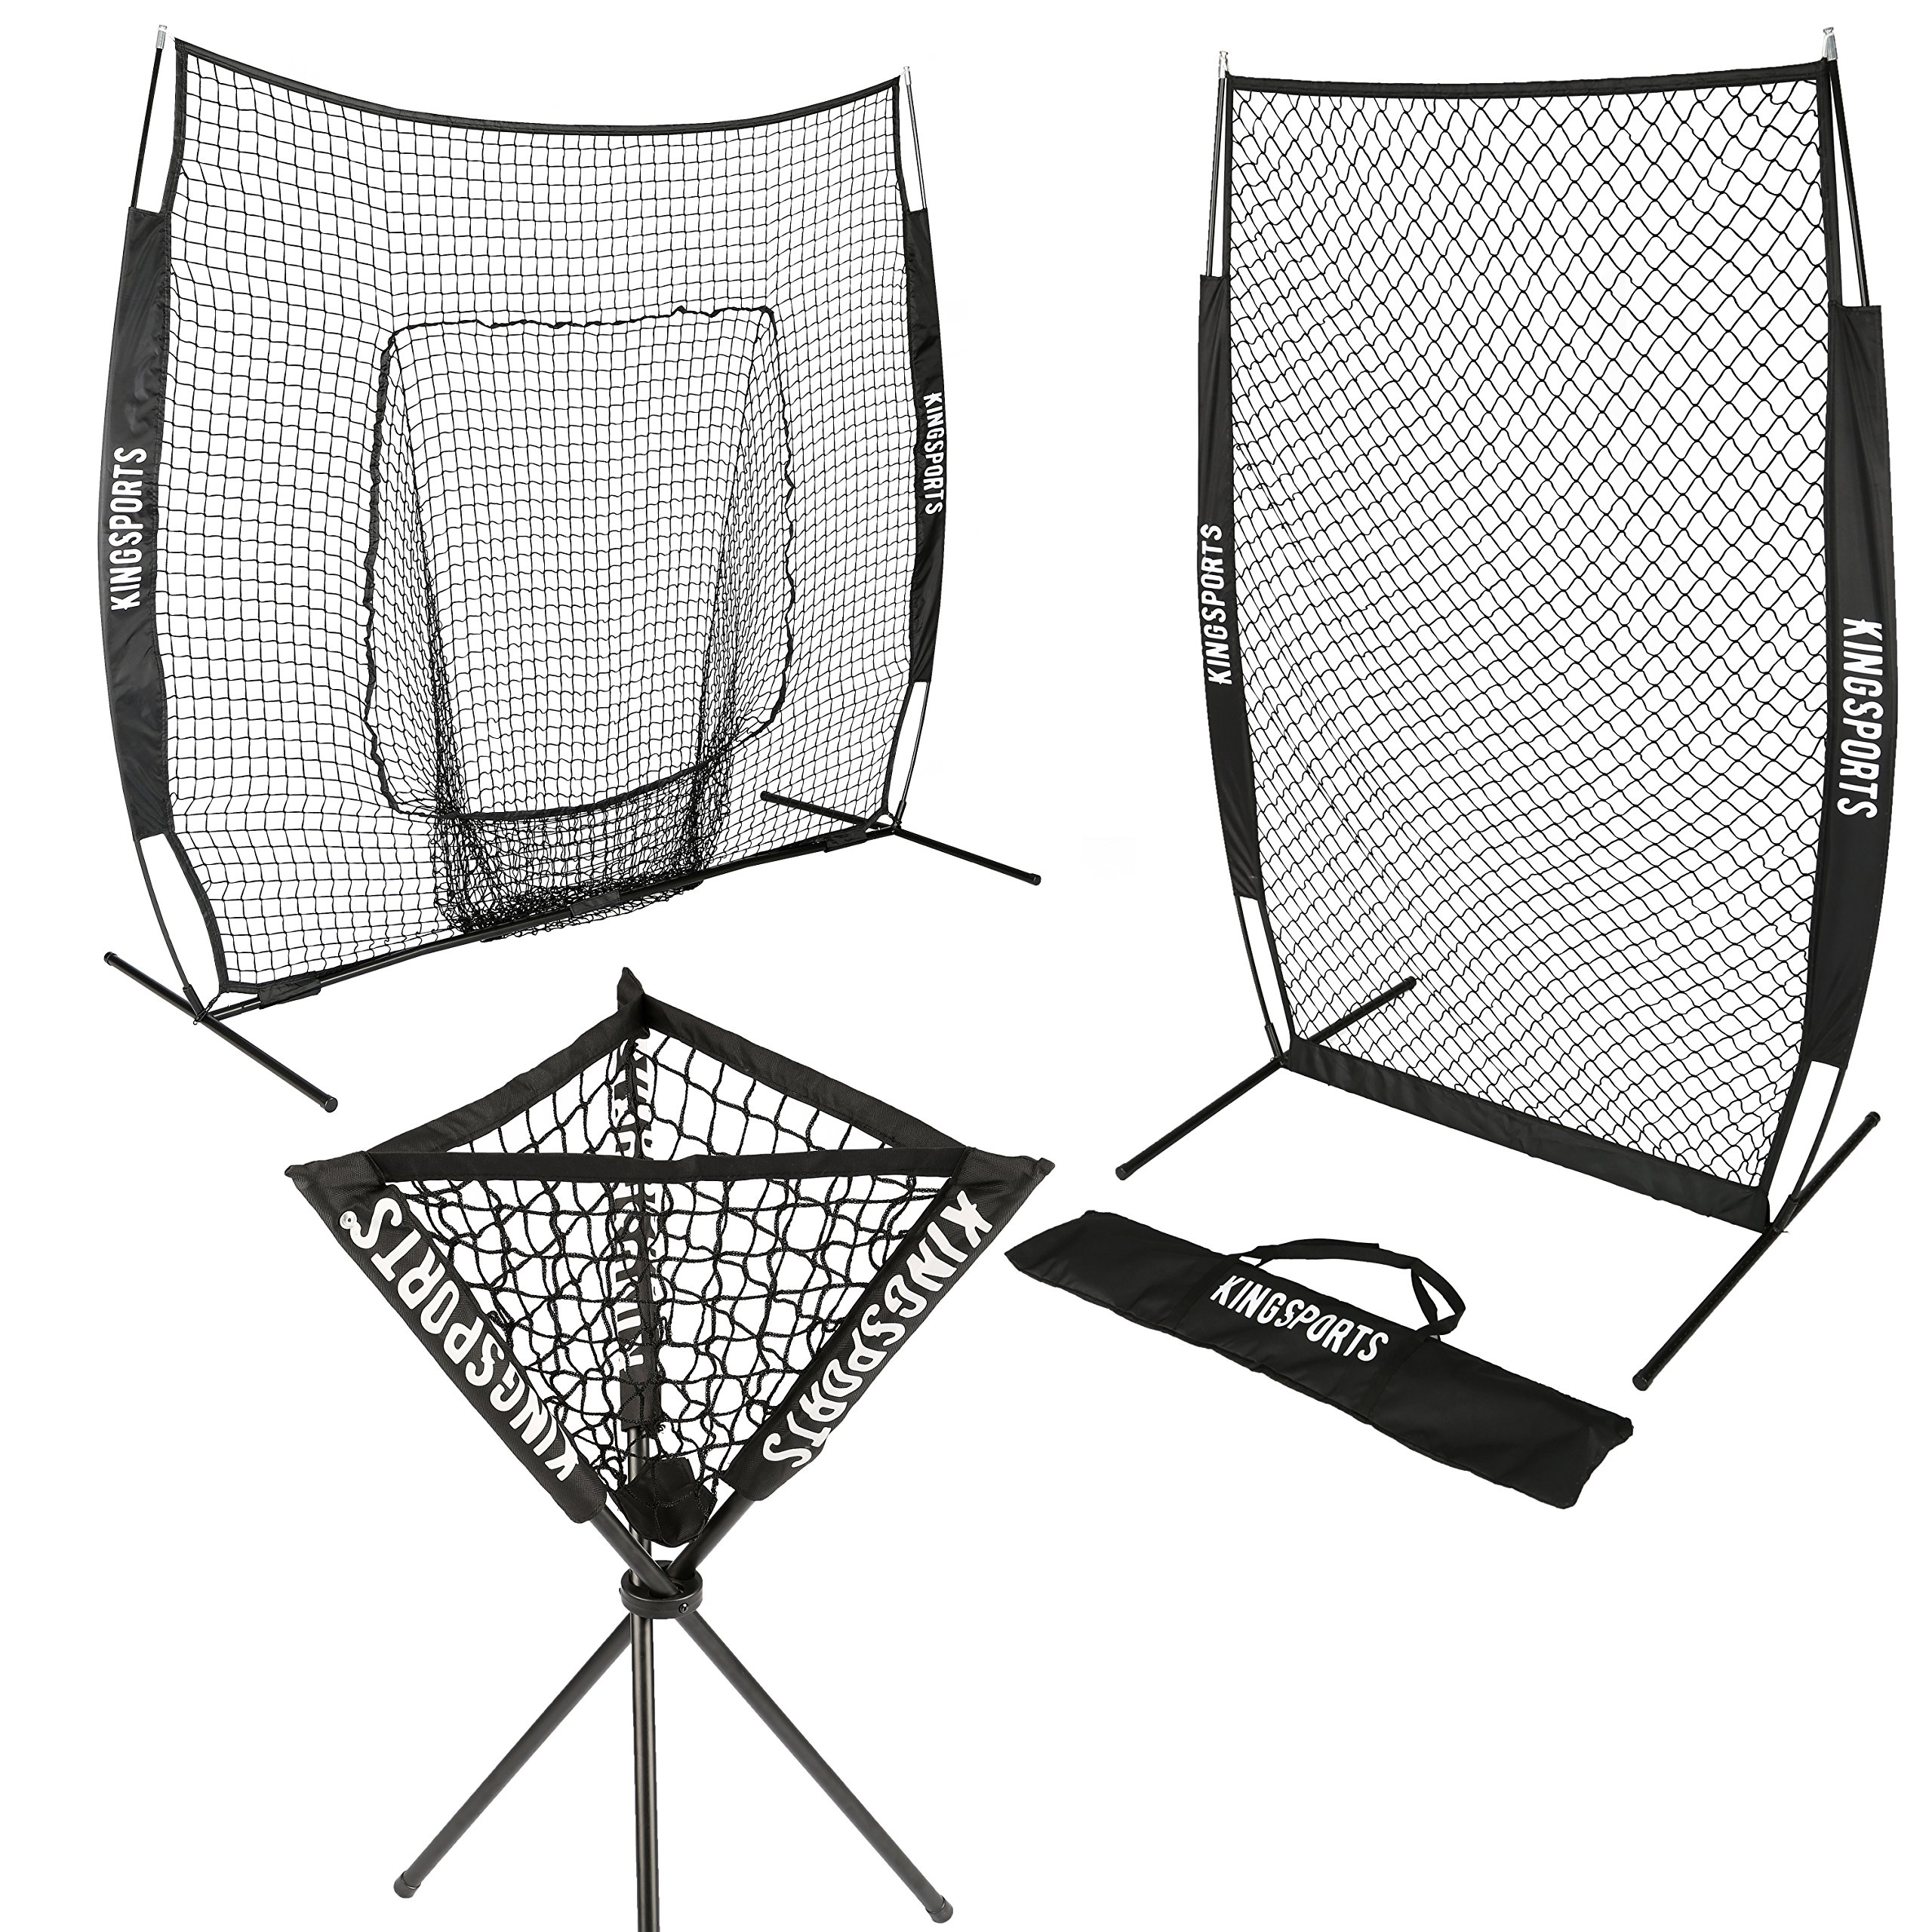 KingSports ALL IN ONE Pro Bundle (Baseball Softball 7x7 Net, 7x4 I-Screen Pitching Net & Ball Caddy) by KingSports